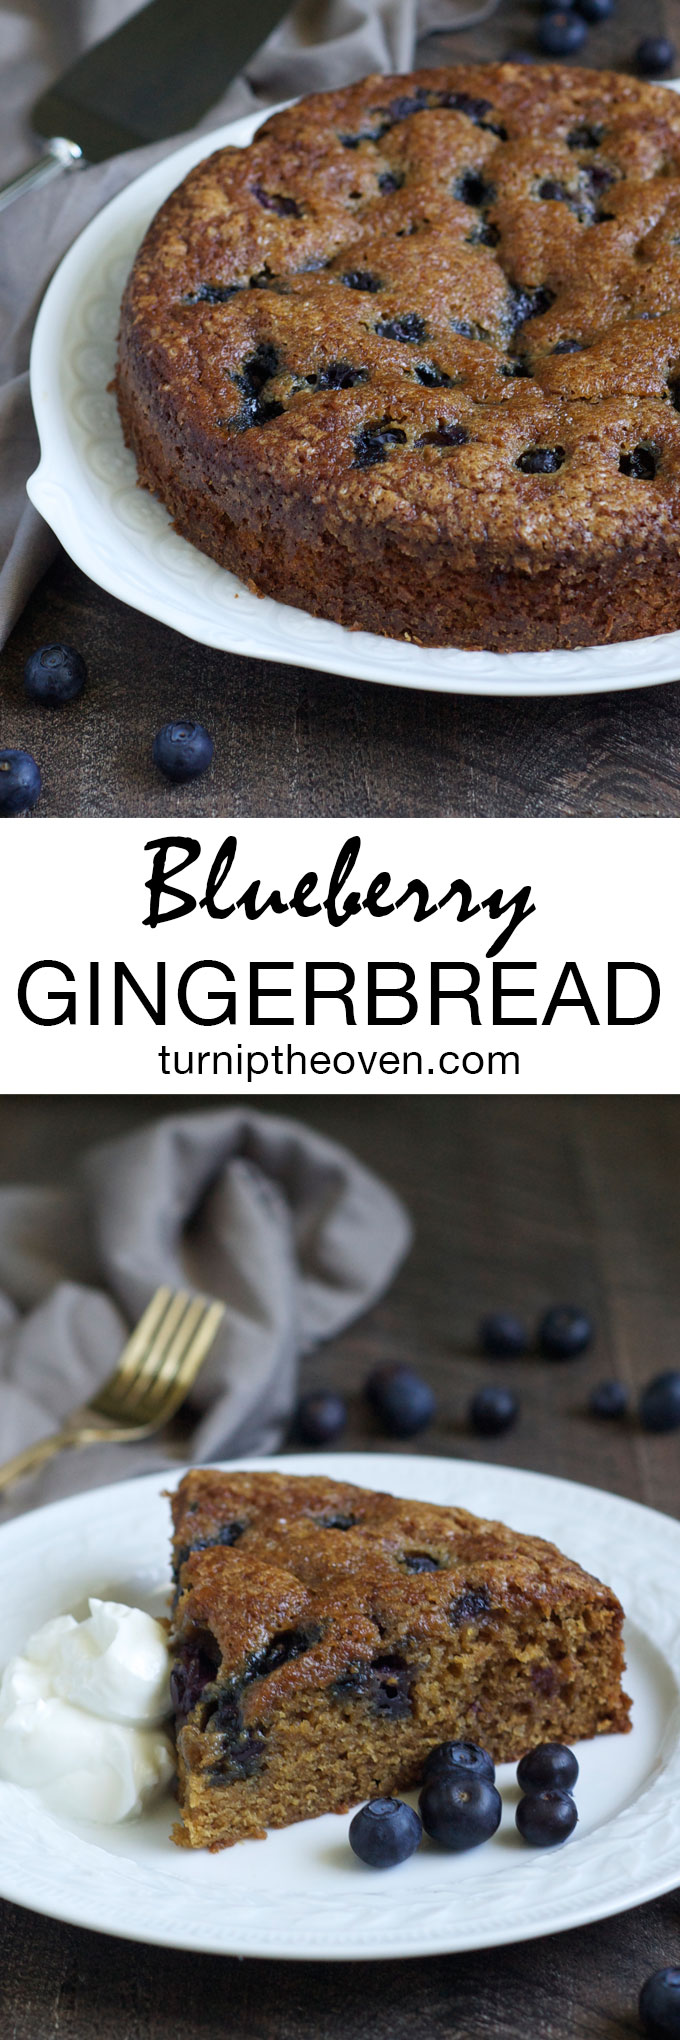 This blueberry gingerbread is the perfect late summer/early fall dessert. Moist, tender cake, lightly spiced with cinnamon and bursting with juicy blueberries!